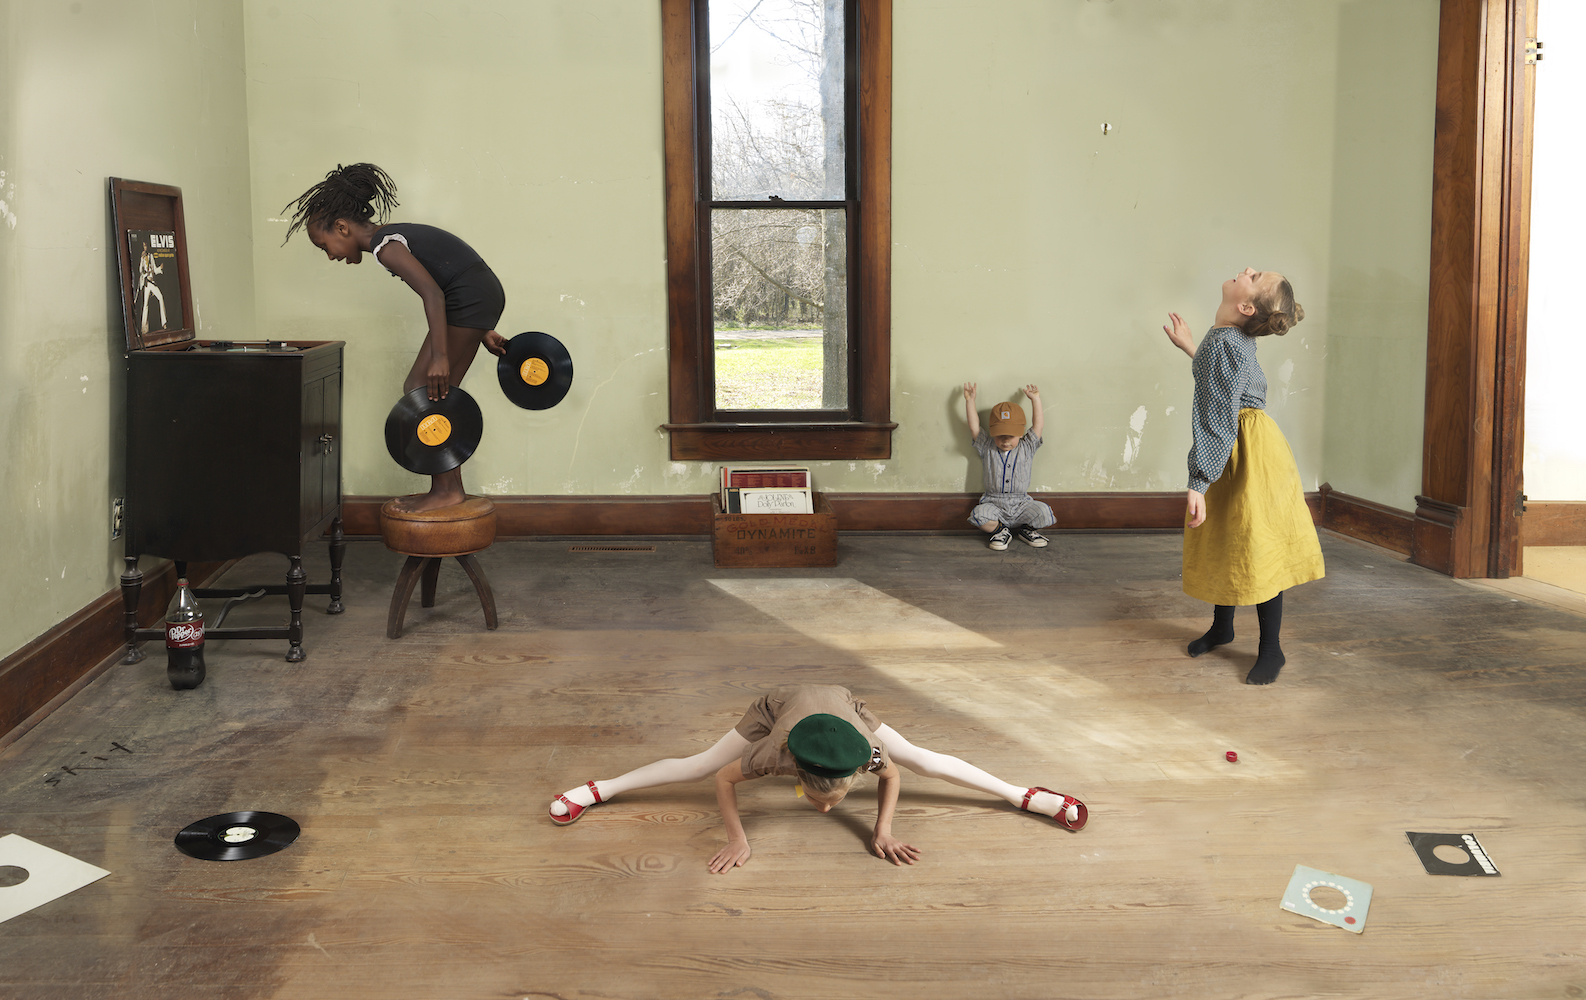 """Julie Blackmon, Records, 2021, archival pigment print, 26"""" x 38.75"""", 35.75"""" x 54.25"""", 44"""" x 67.5"""", editions of 7, price on request"""